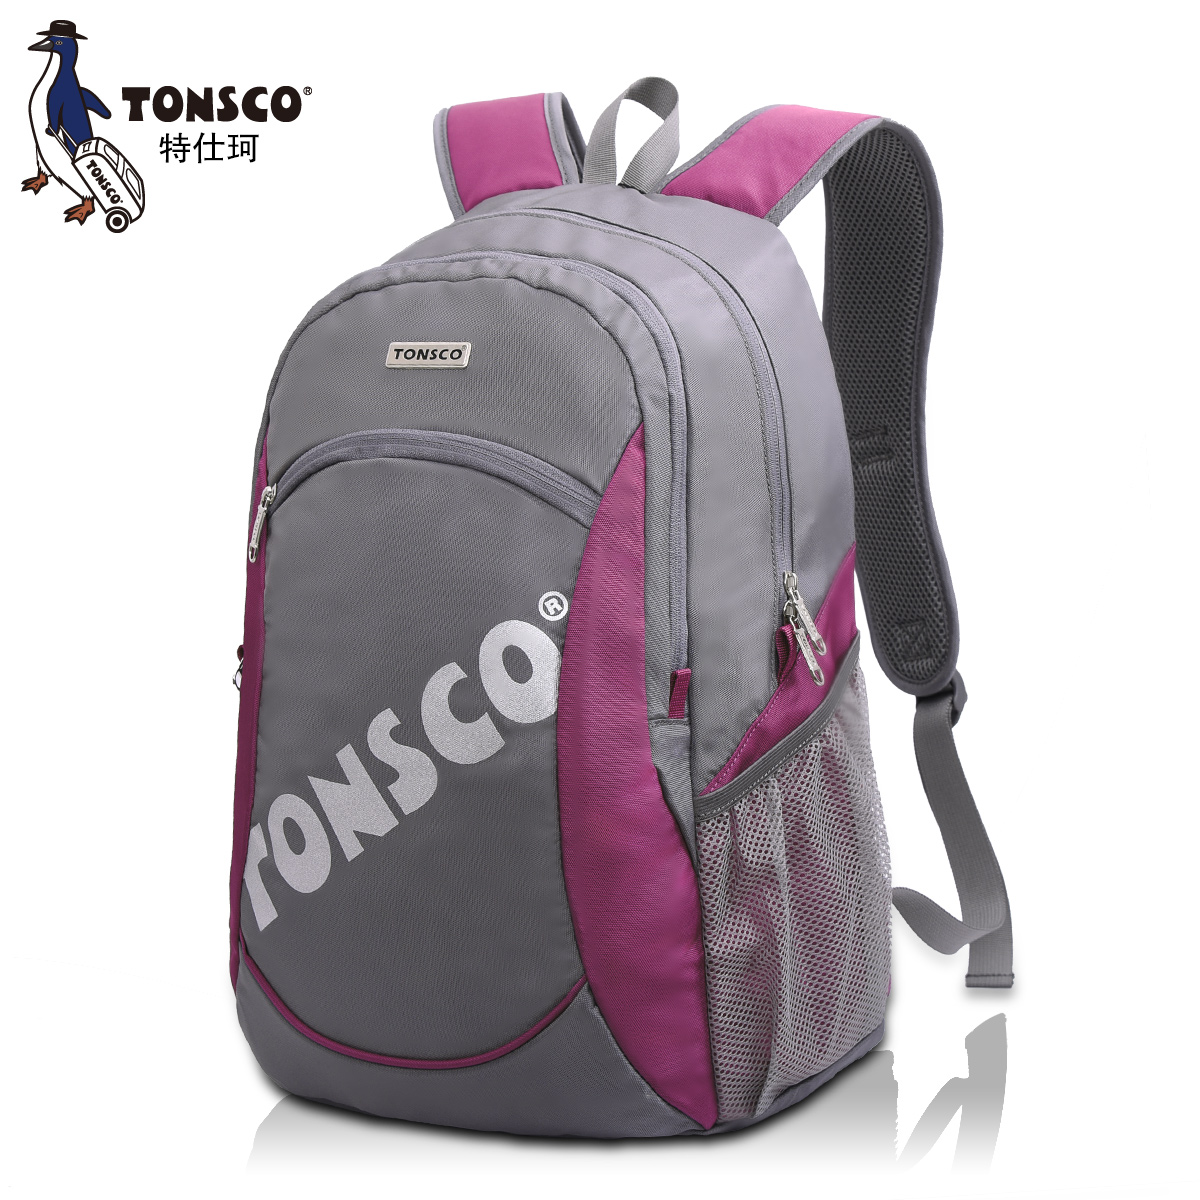 Outdoor travel backpack female Korean campus style students versatile schoolbag mens fashion trend personalized sports backpack